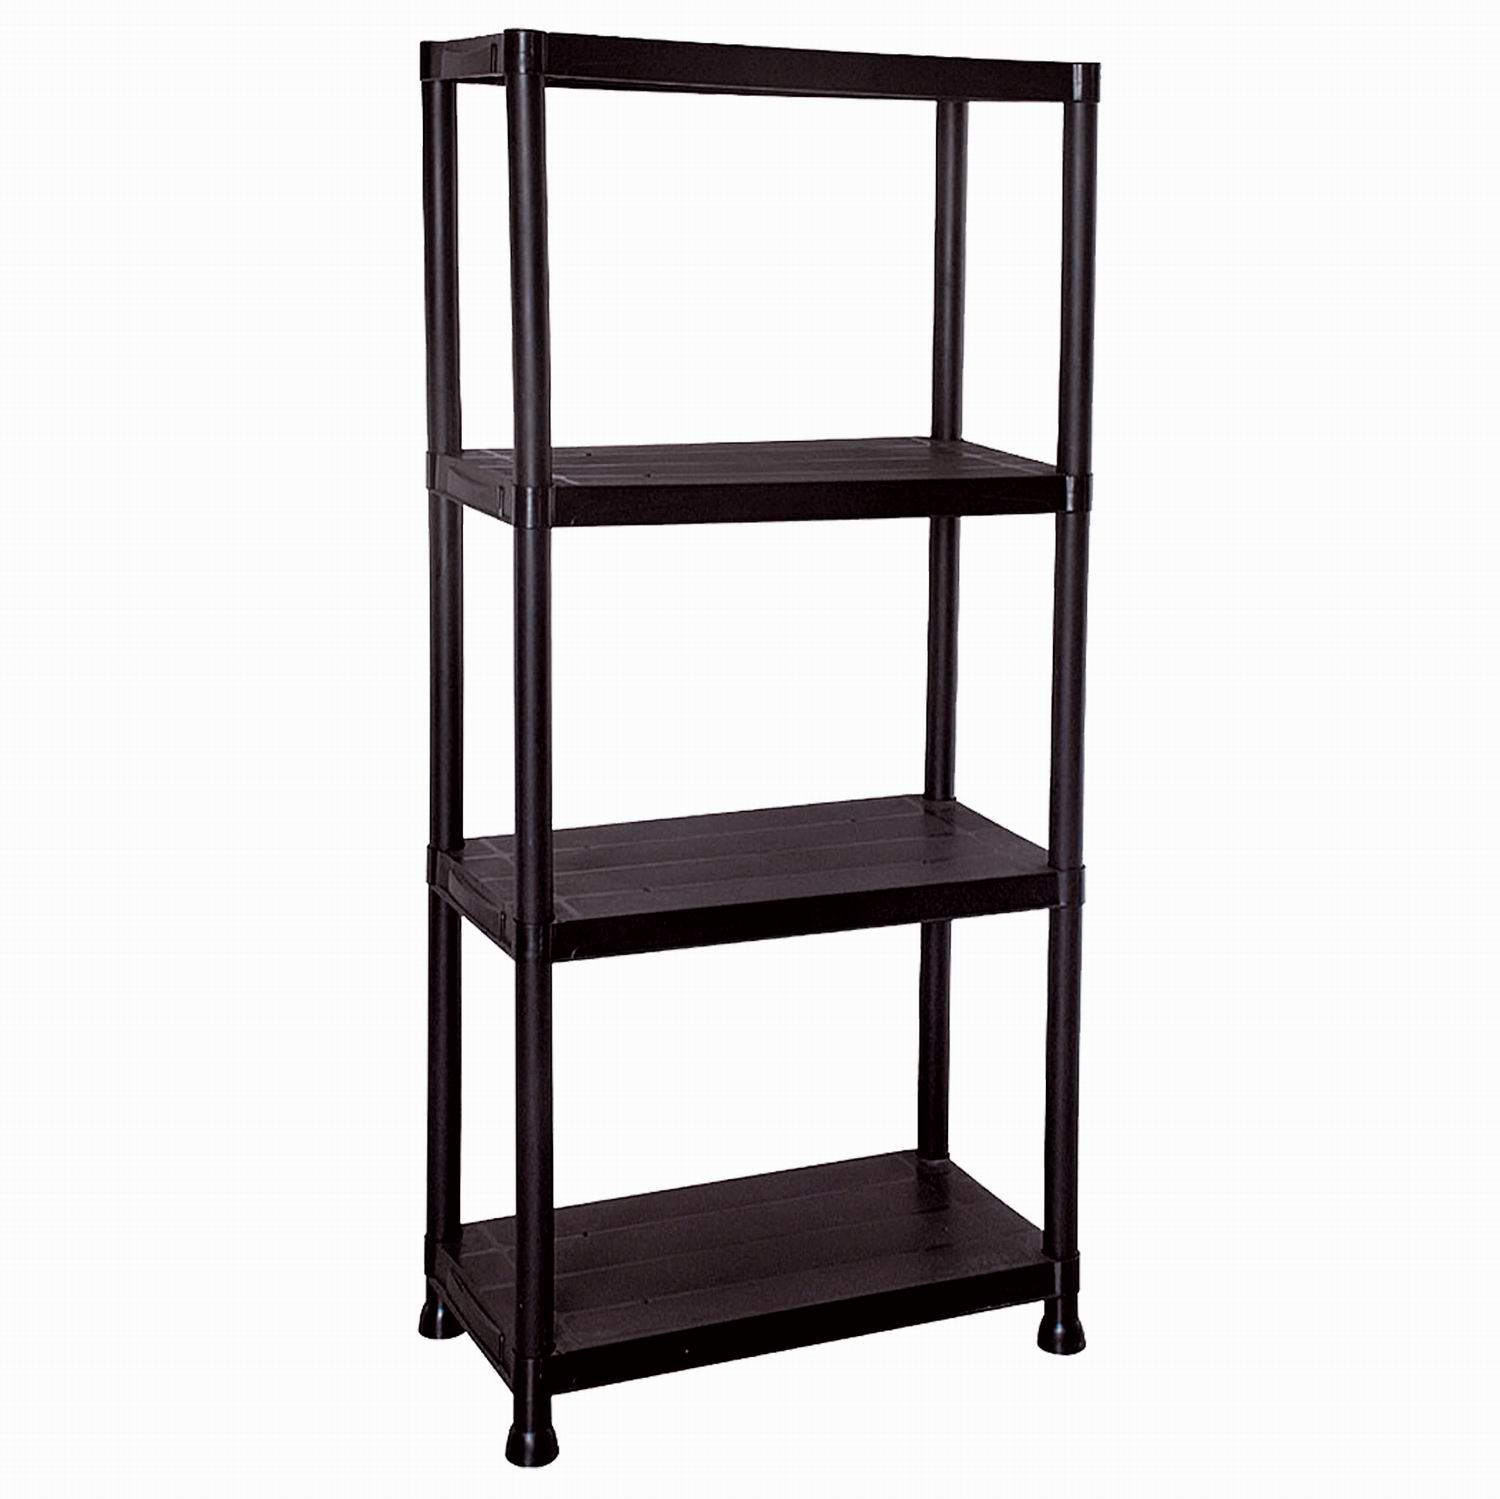 storage shelving units 4 5 tier black plastic shelving unit storage shelves 26896